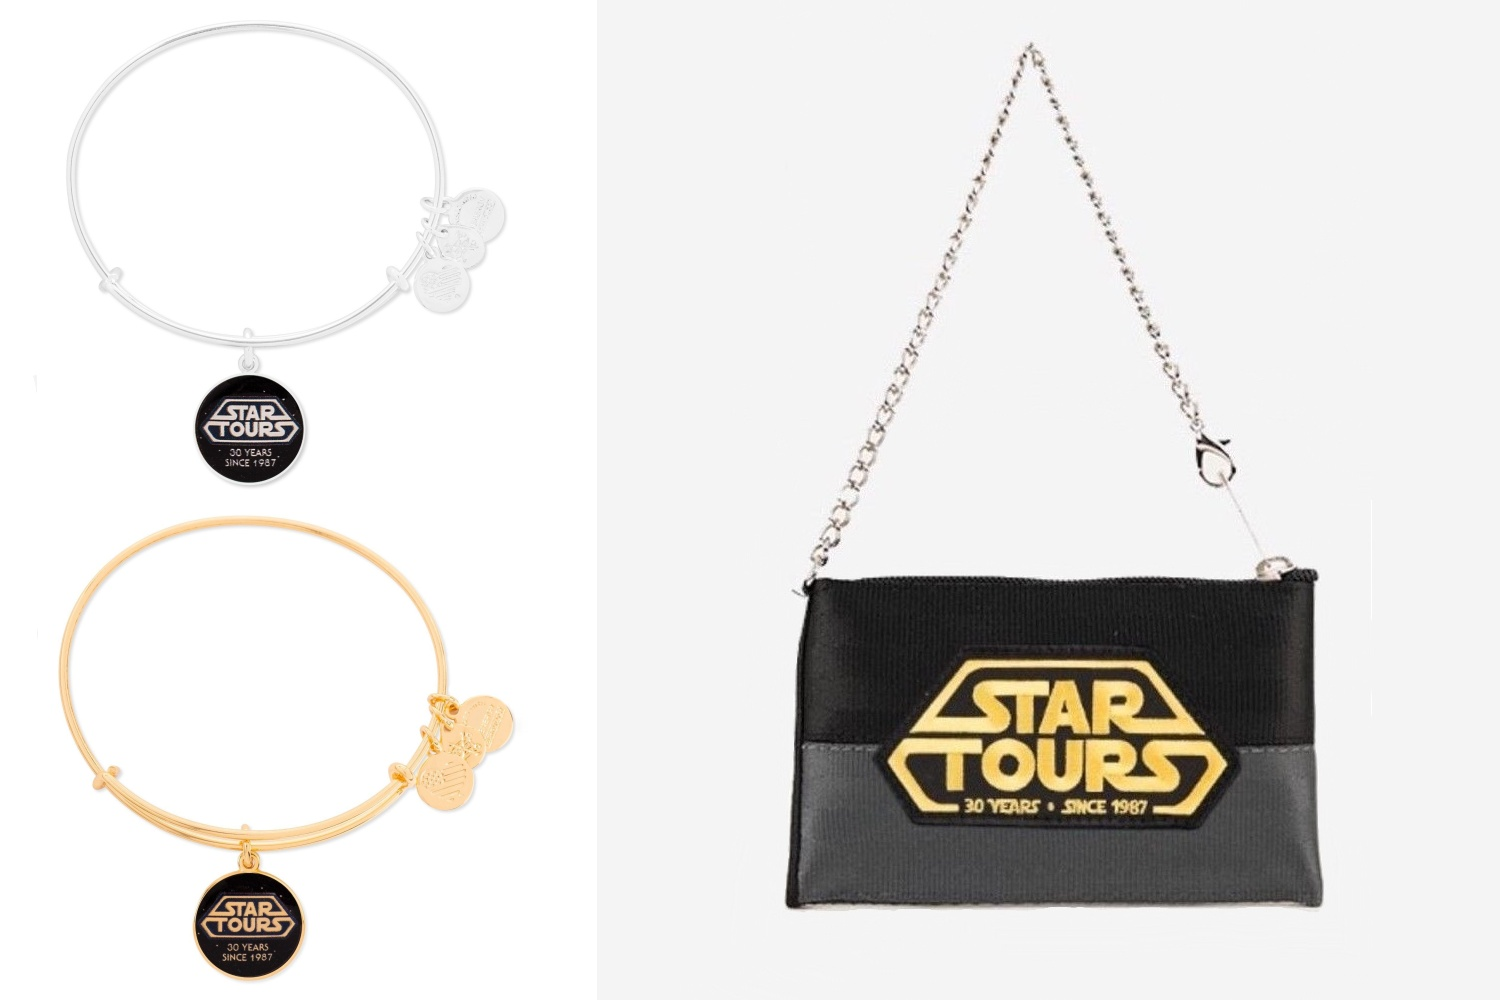 New Star Tours Fashion Coming Soon at D23